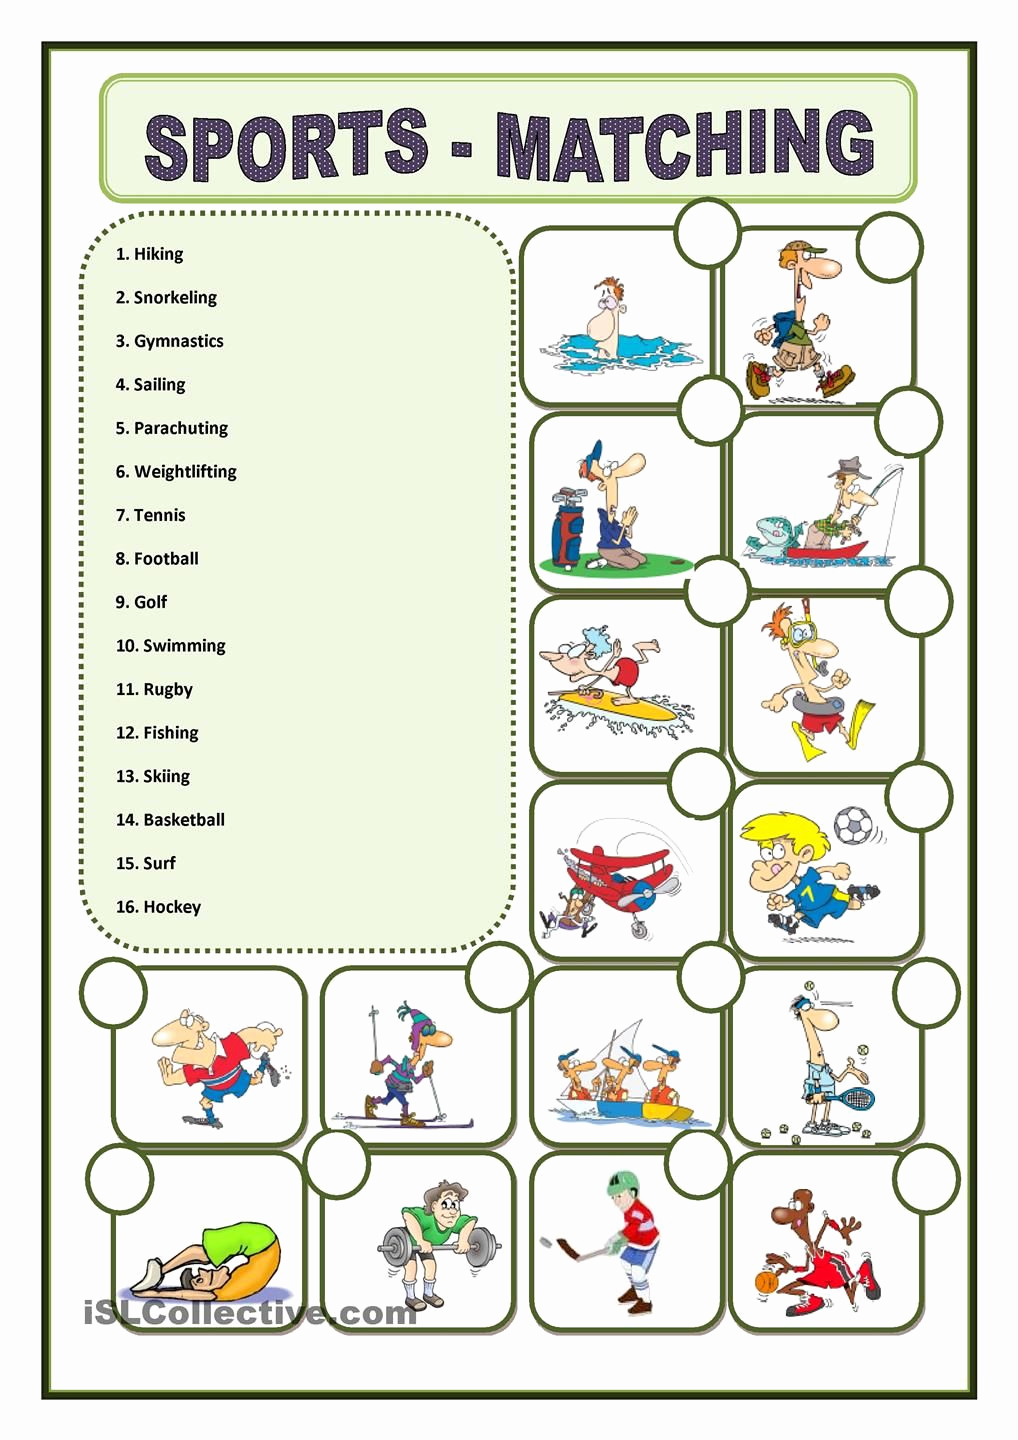 Softball Worksheets Printable Free - Tduck.ca | Softball Worksheets Printable